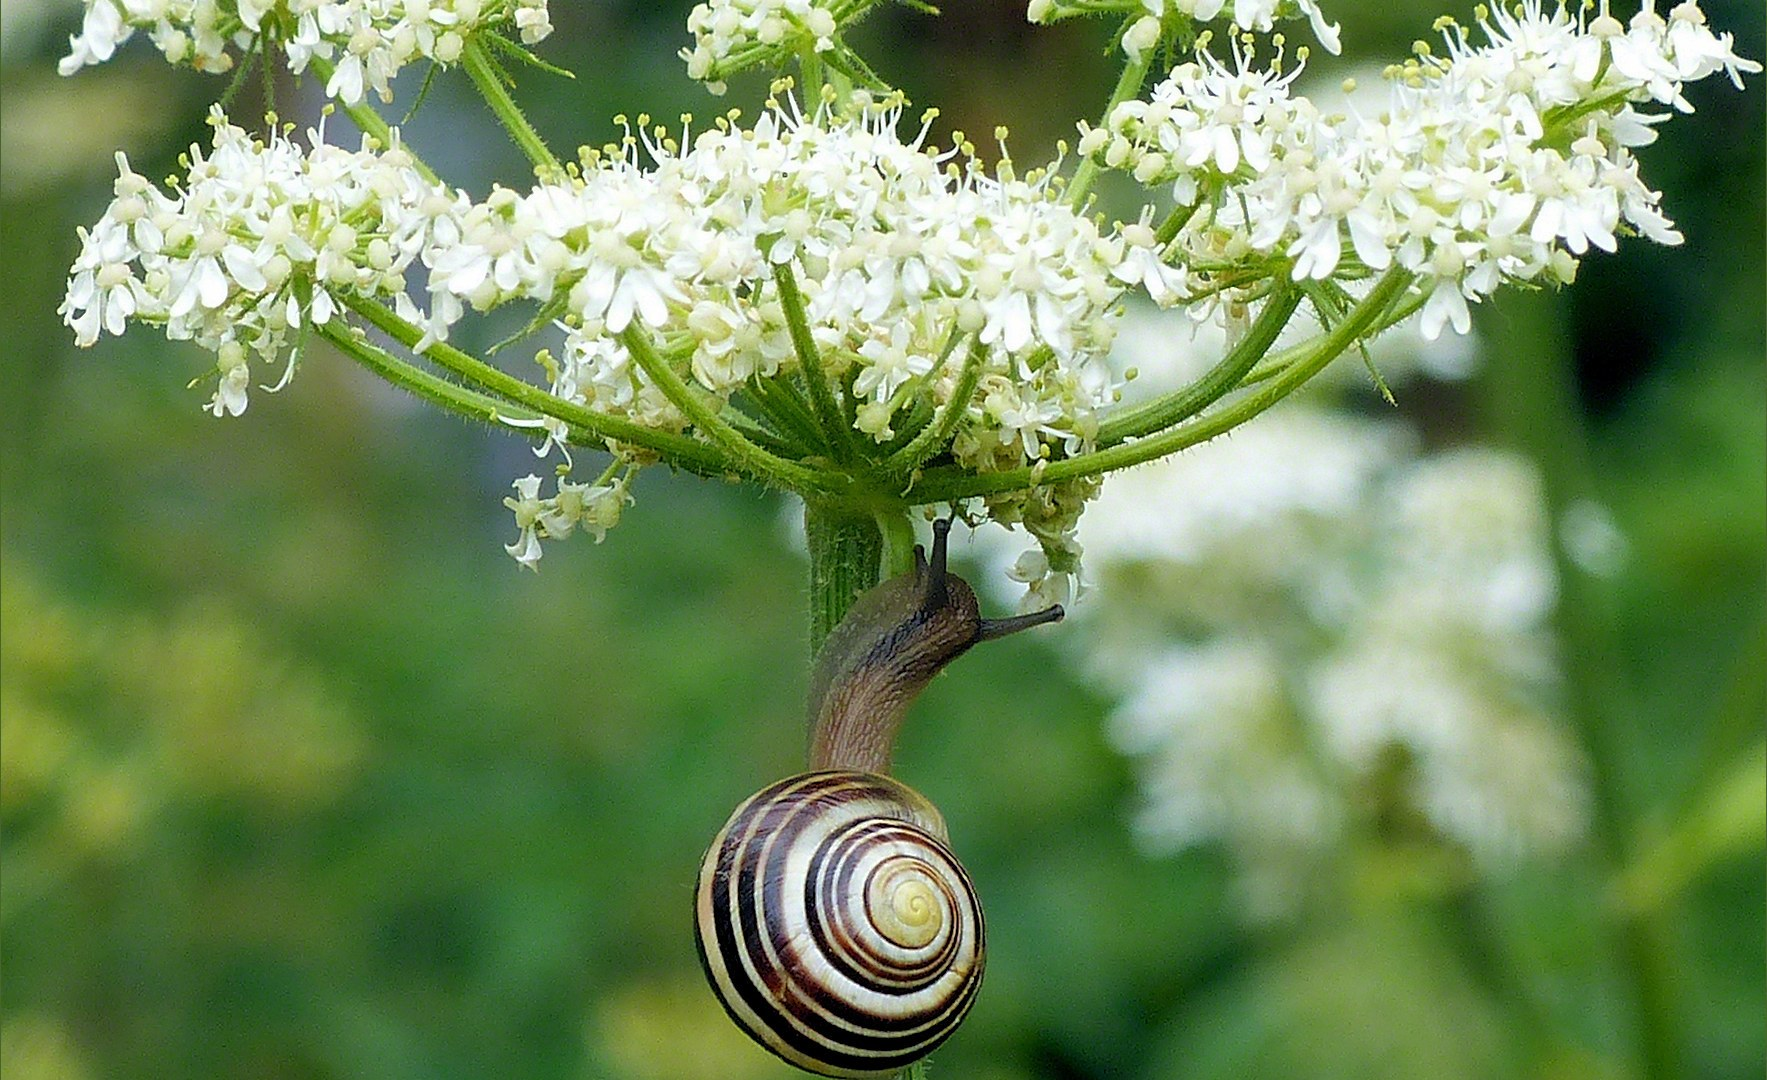 Banded snail on flower stalk